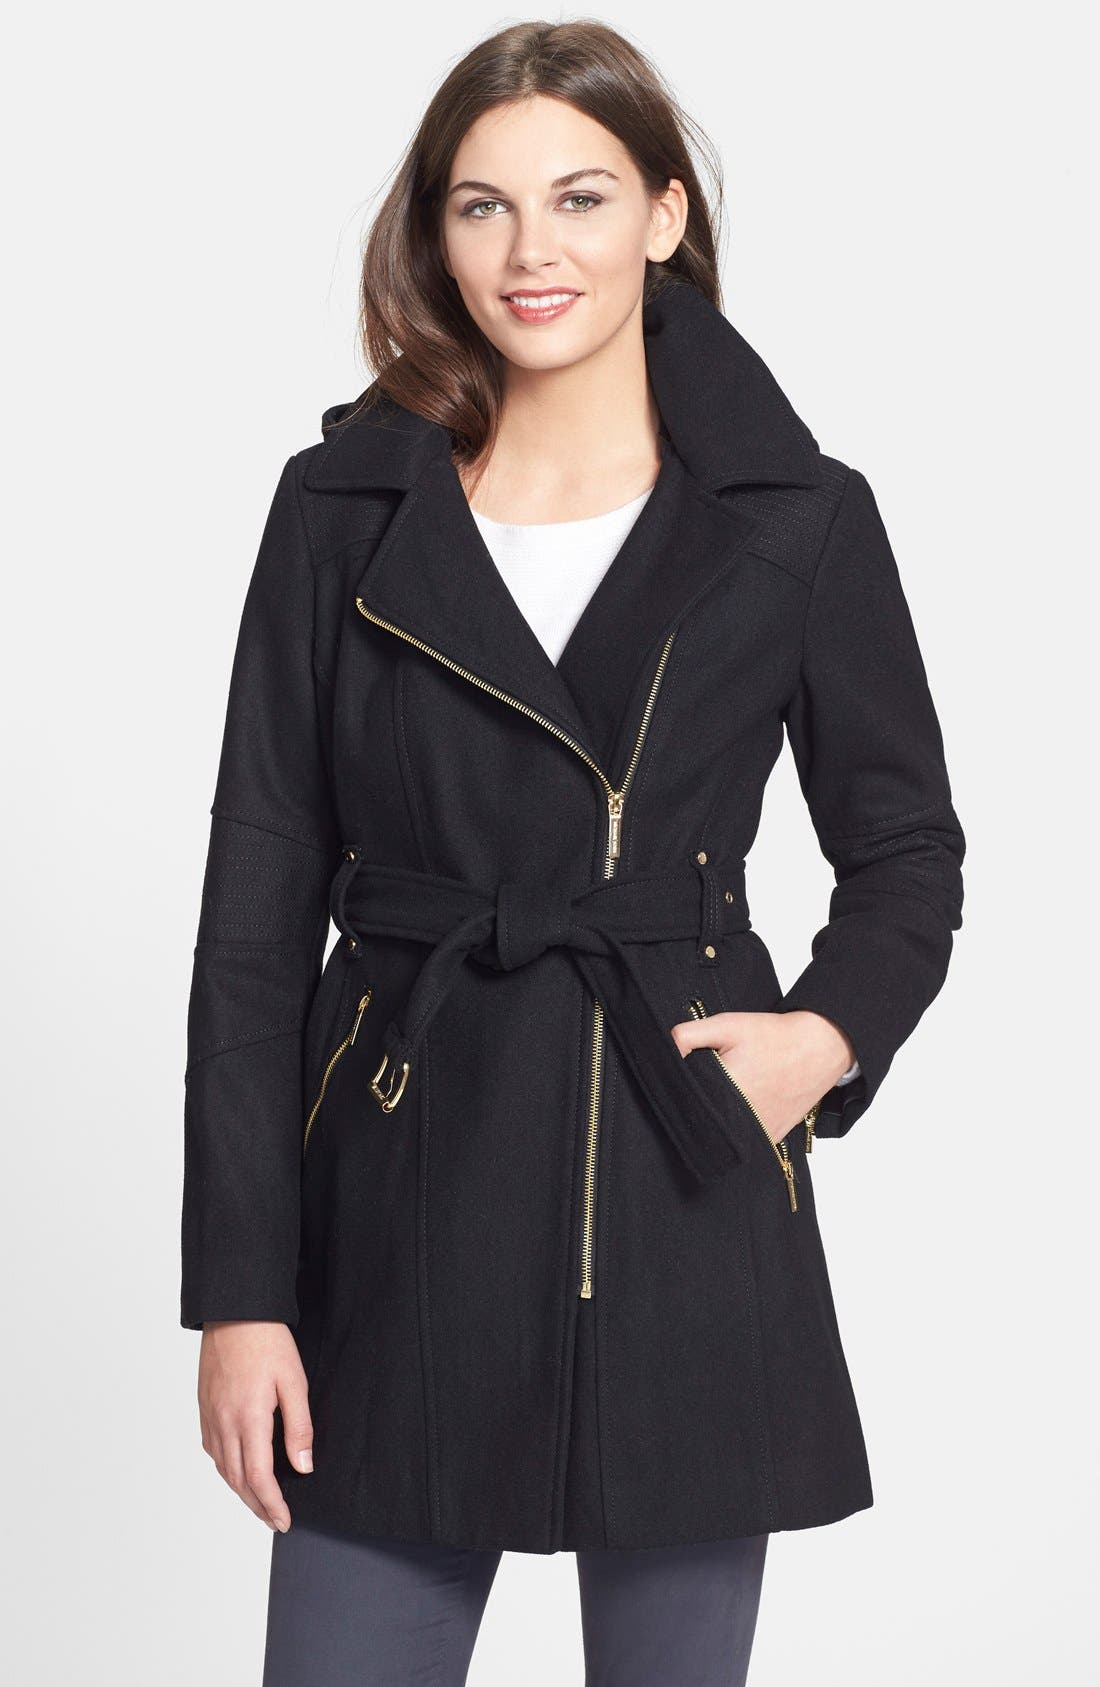 Alternate Image 1 Selected - MICHAEL Michael Kors Belted Hooded Wool Blend Asymmetrical Coat (Online Only)